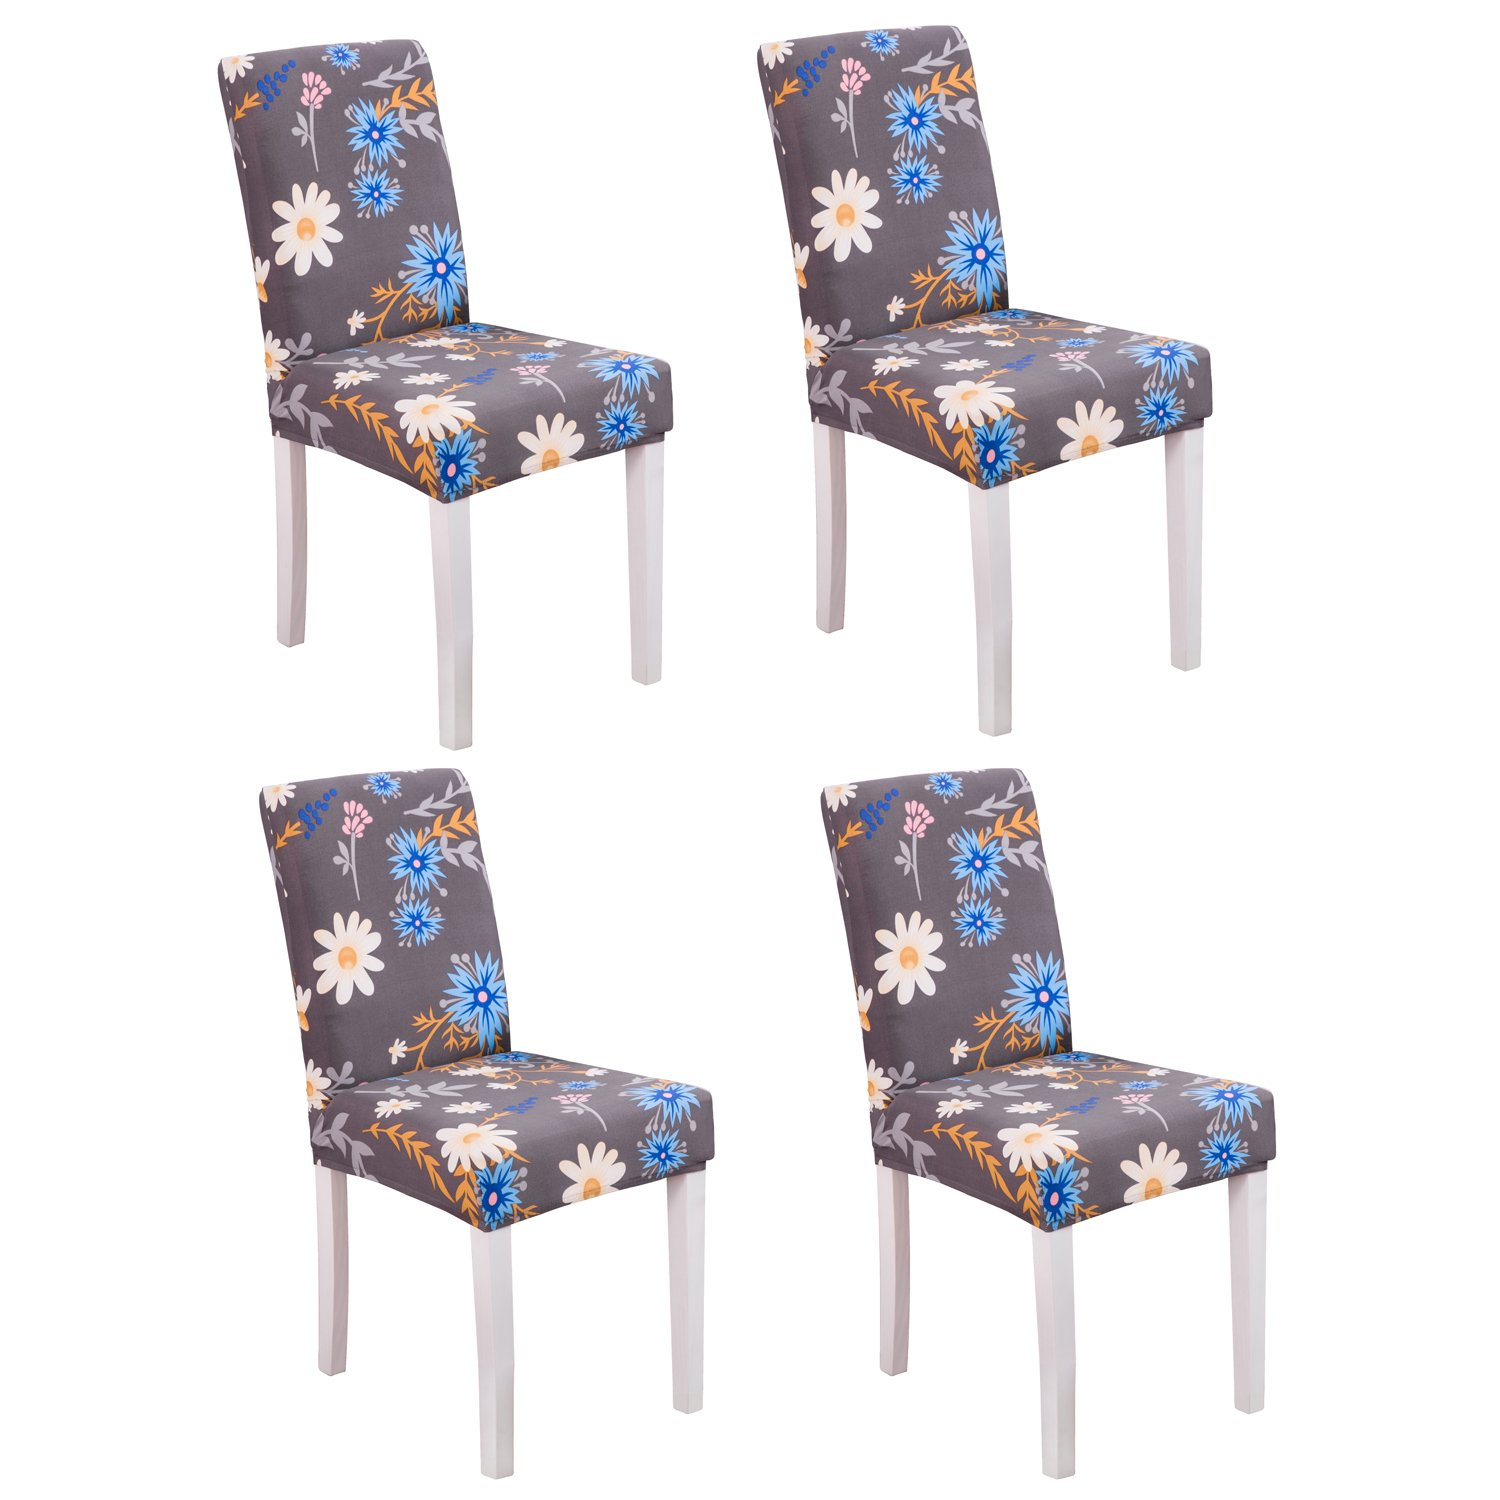 YEESSION Set of 4 Spandex Fabric Stretch Removable Washable Short Dining Chair Protector Cover Slipcover with Printed Pattern(Style 02)